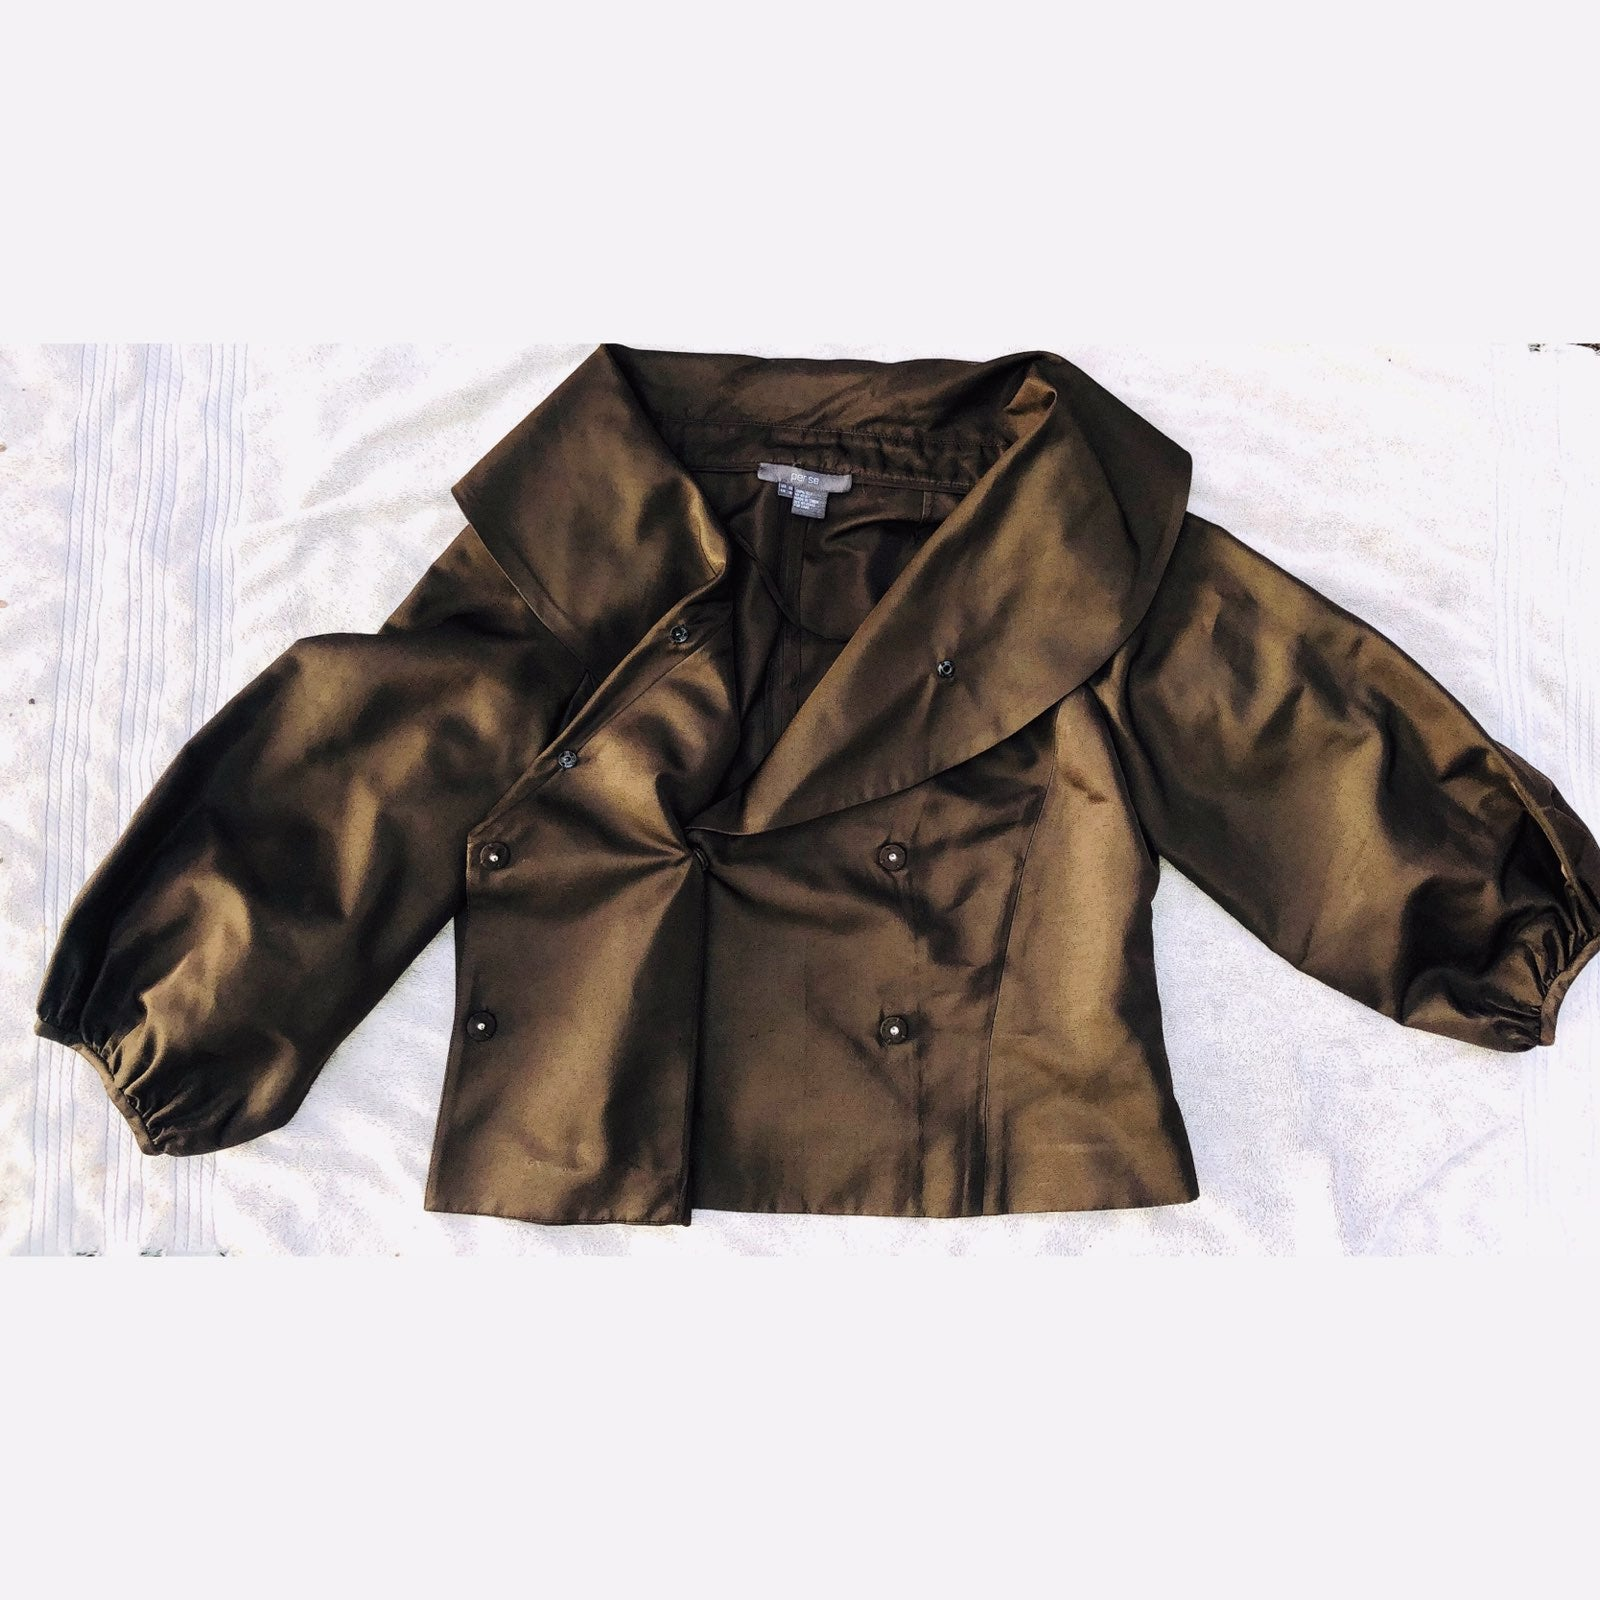 100% Silk DBL Breasted Peacoat